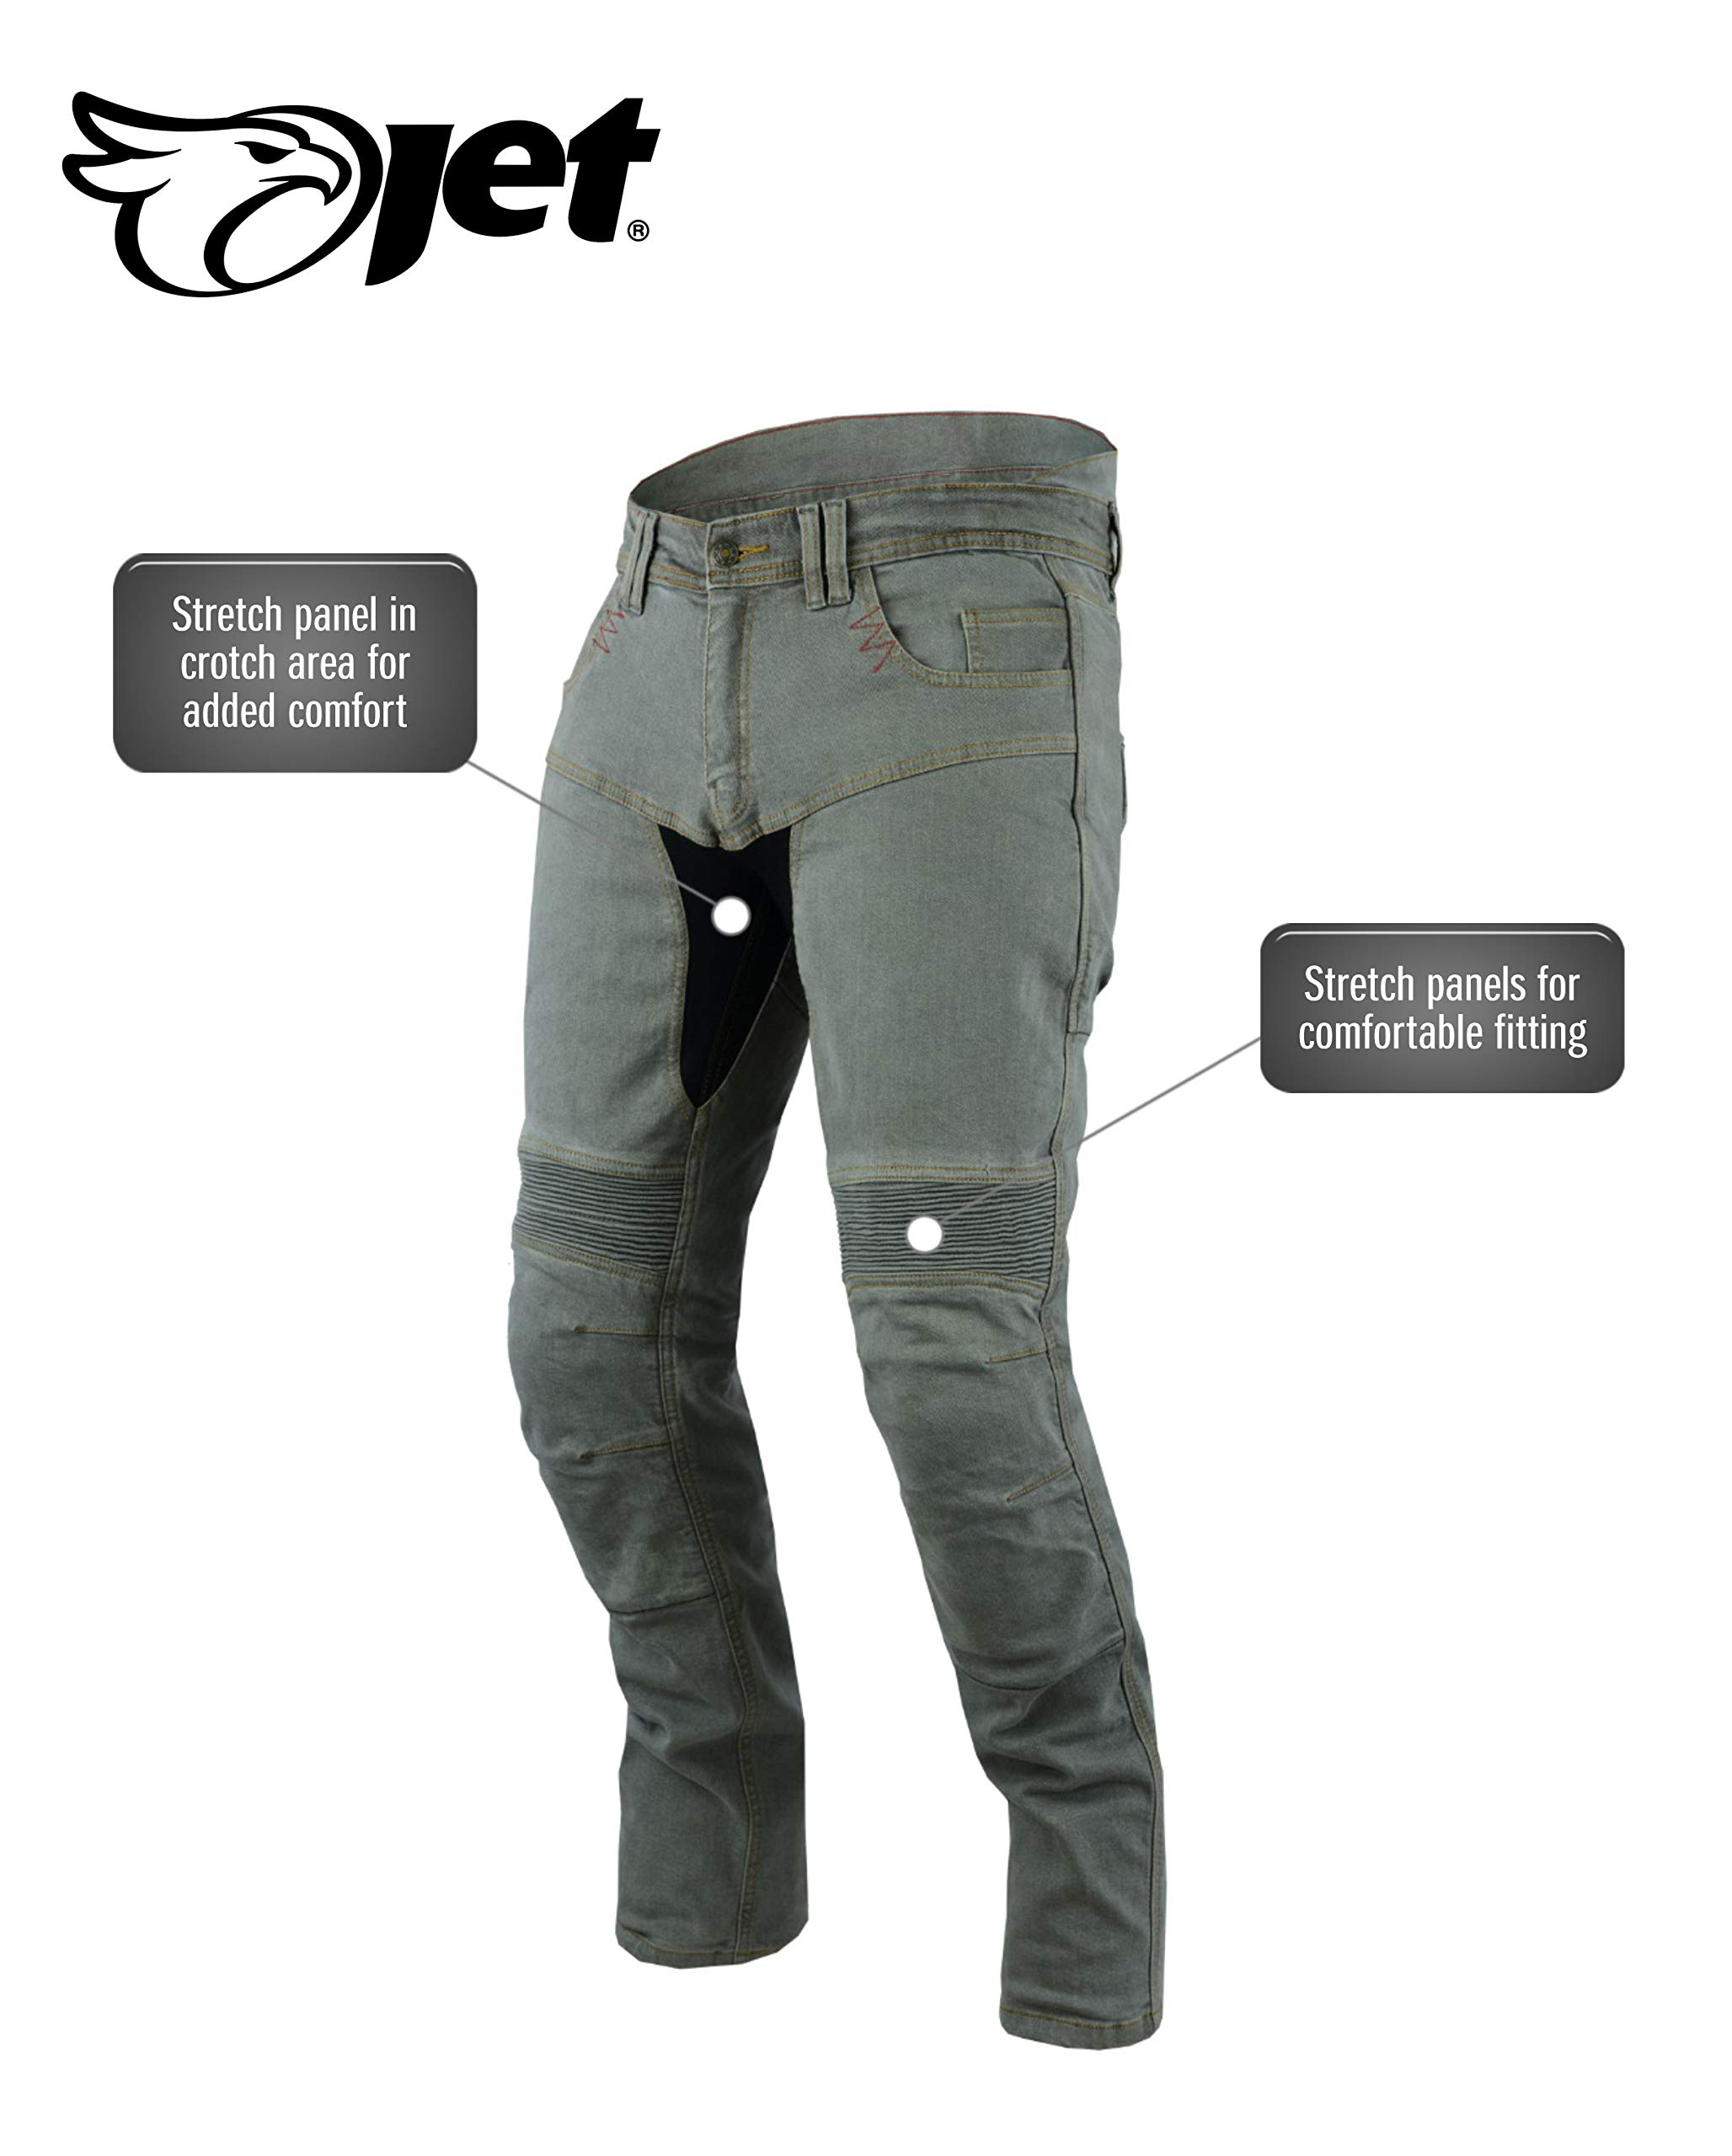 W48 L30, Grey JET Mens Motorcycle Motorbike Textile CE Armoured Waterproof Trousers Pants Protective DYNAMO